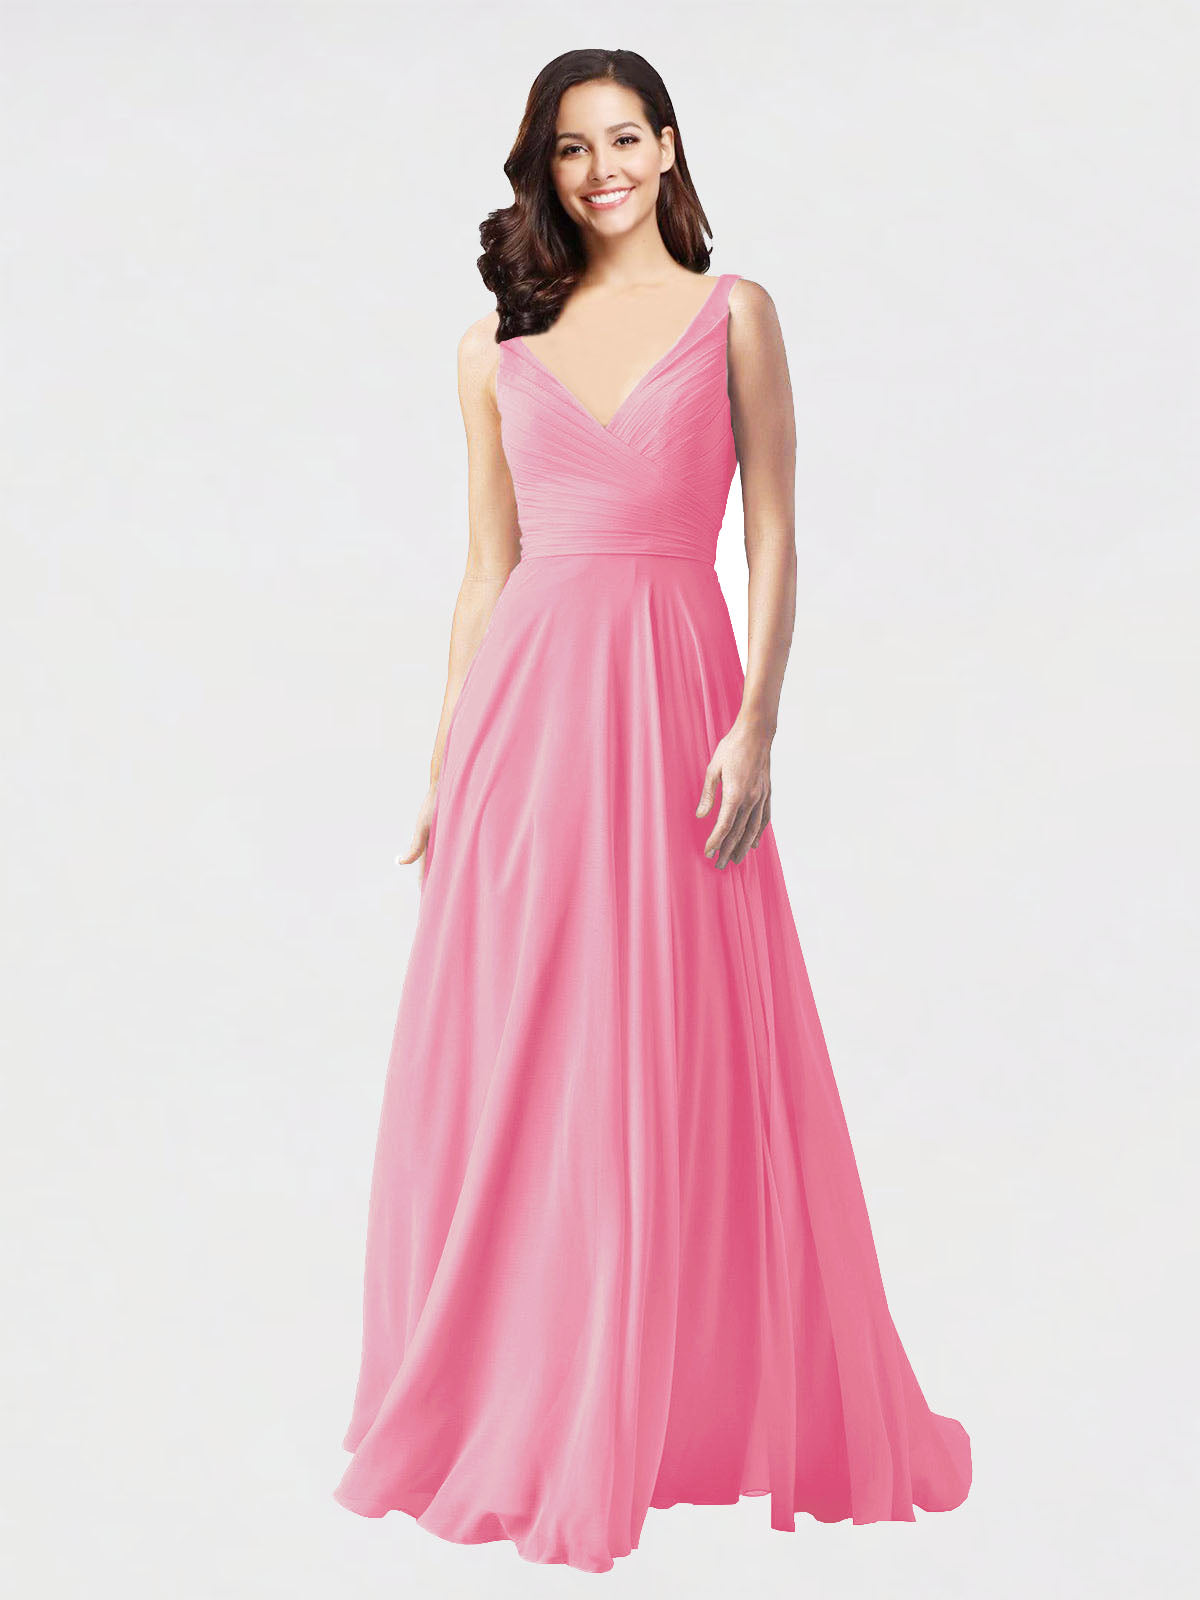 Long A-Line V-Neck Sleeveless Hot Pink Chiffon Bridesmaid Dress Bernice